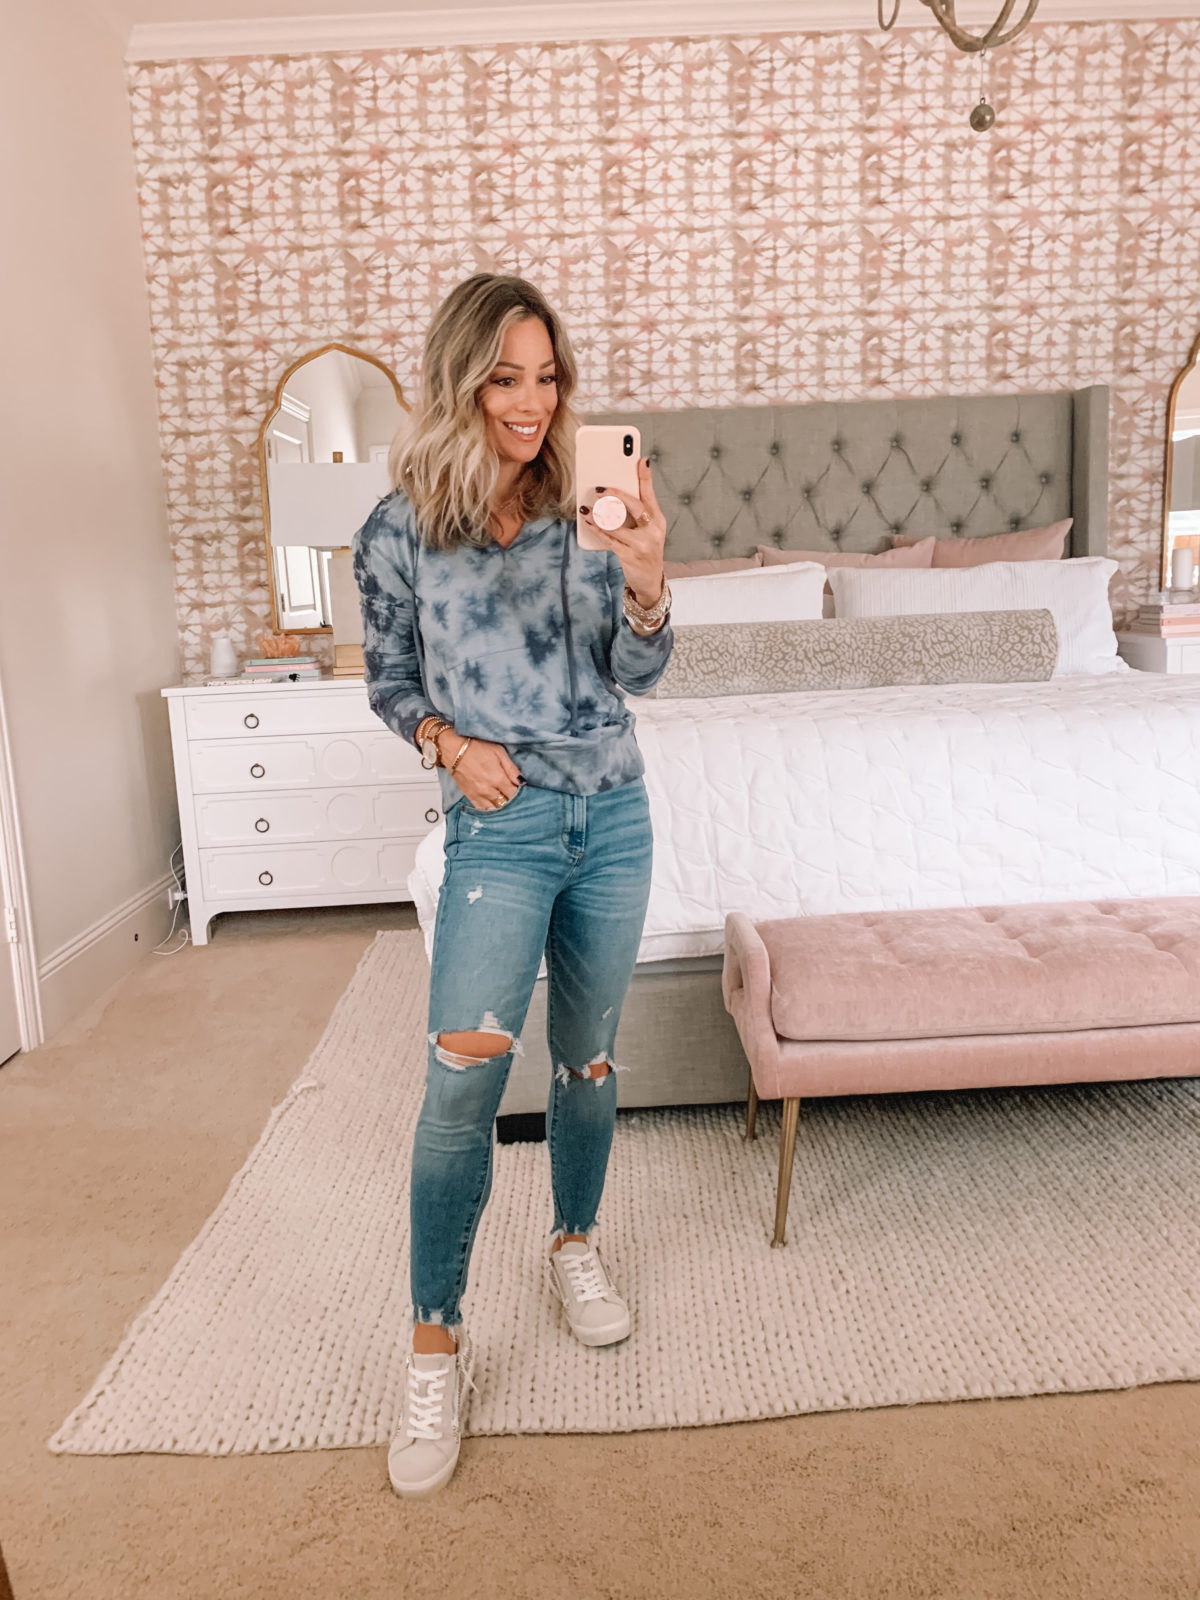 Dressing Room Finds, Target, Distressed Jeans, Sneakers